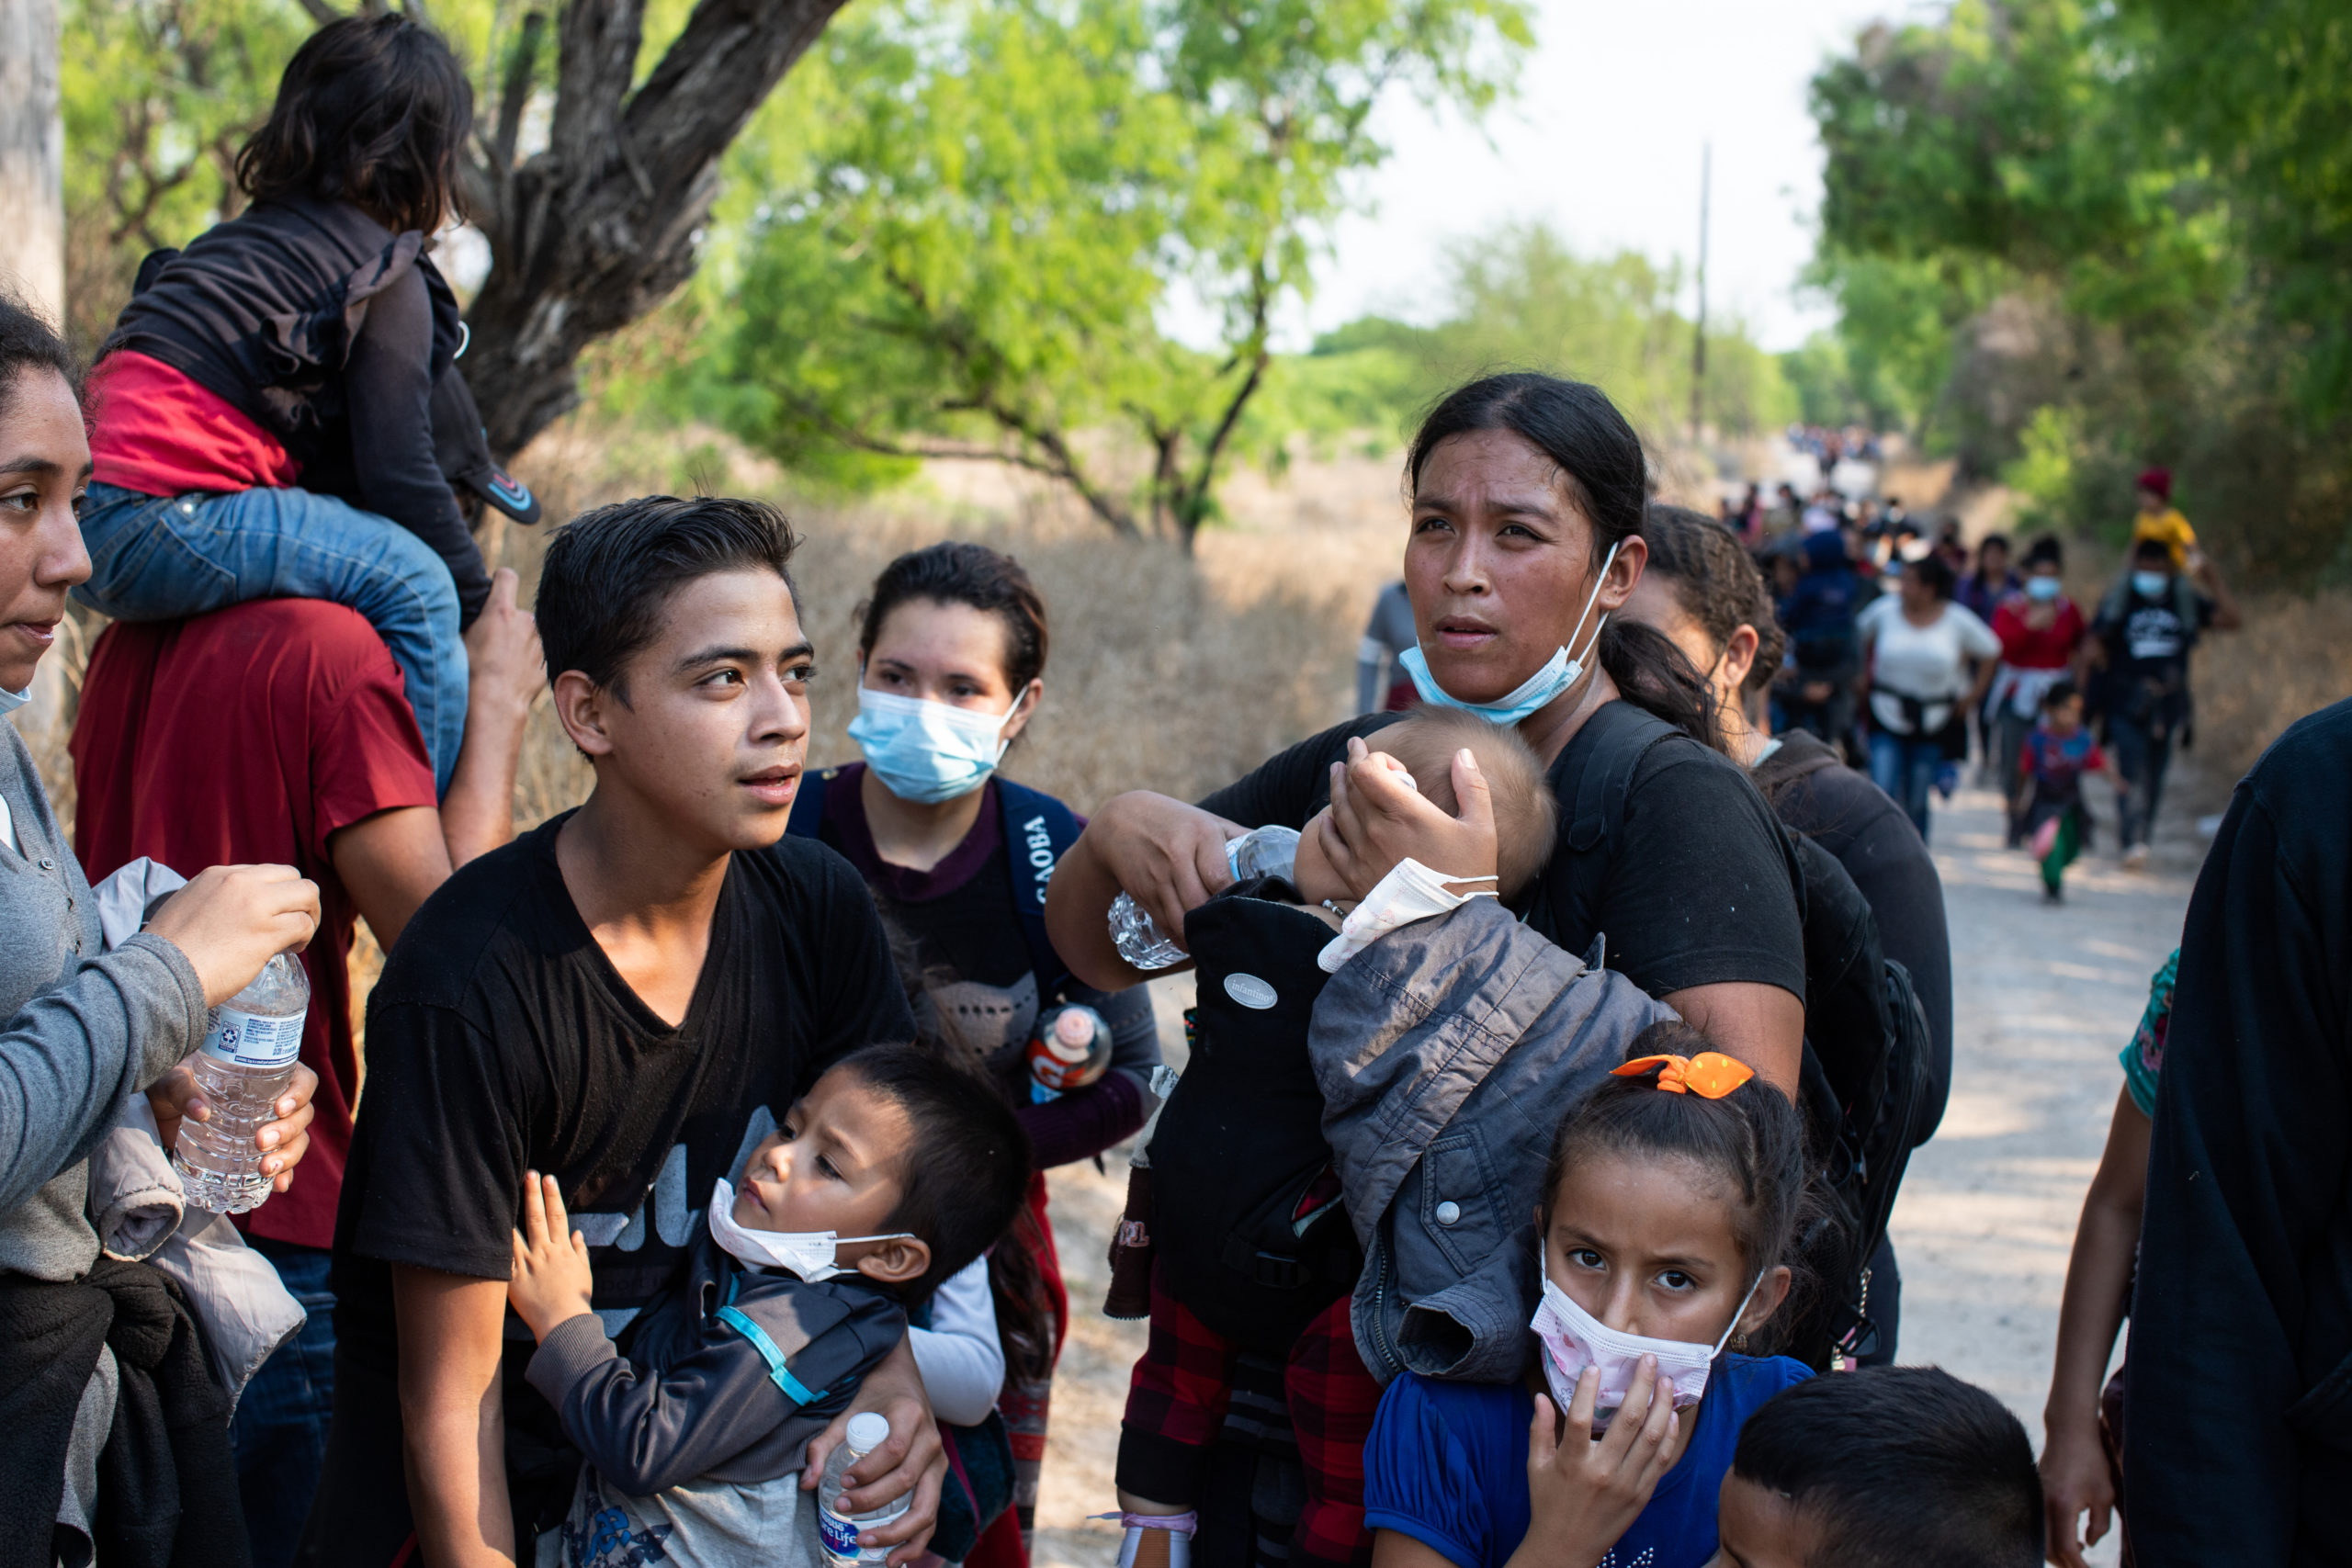 Illegal migrants use a road on private land to access a Customs and Border Protection field processing facility under the Anzalduas International Bridge near Mission, Texas, on March 26, 2021. (Kaylee Greenlee - Daily Caller News Foundation)